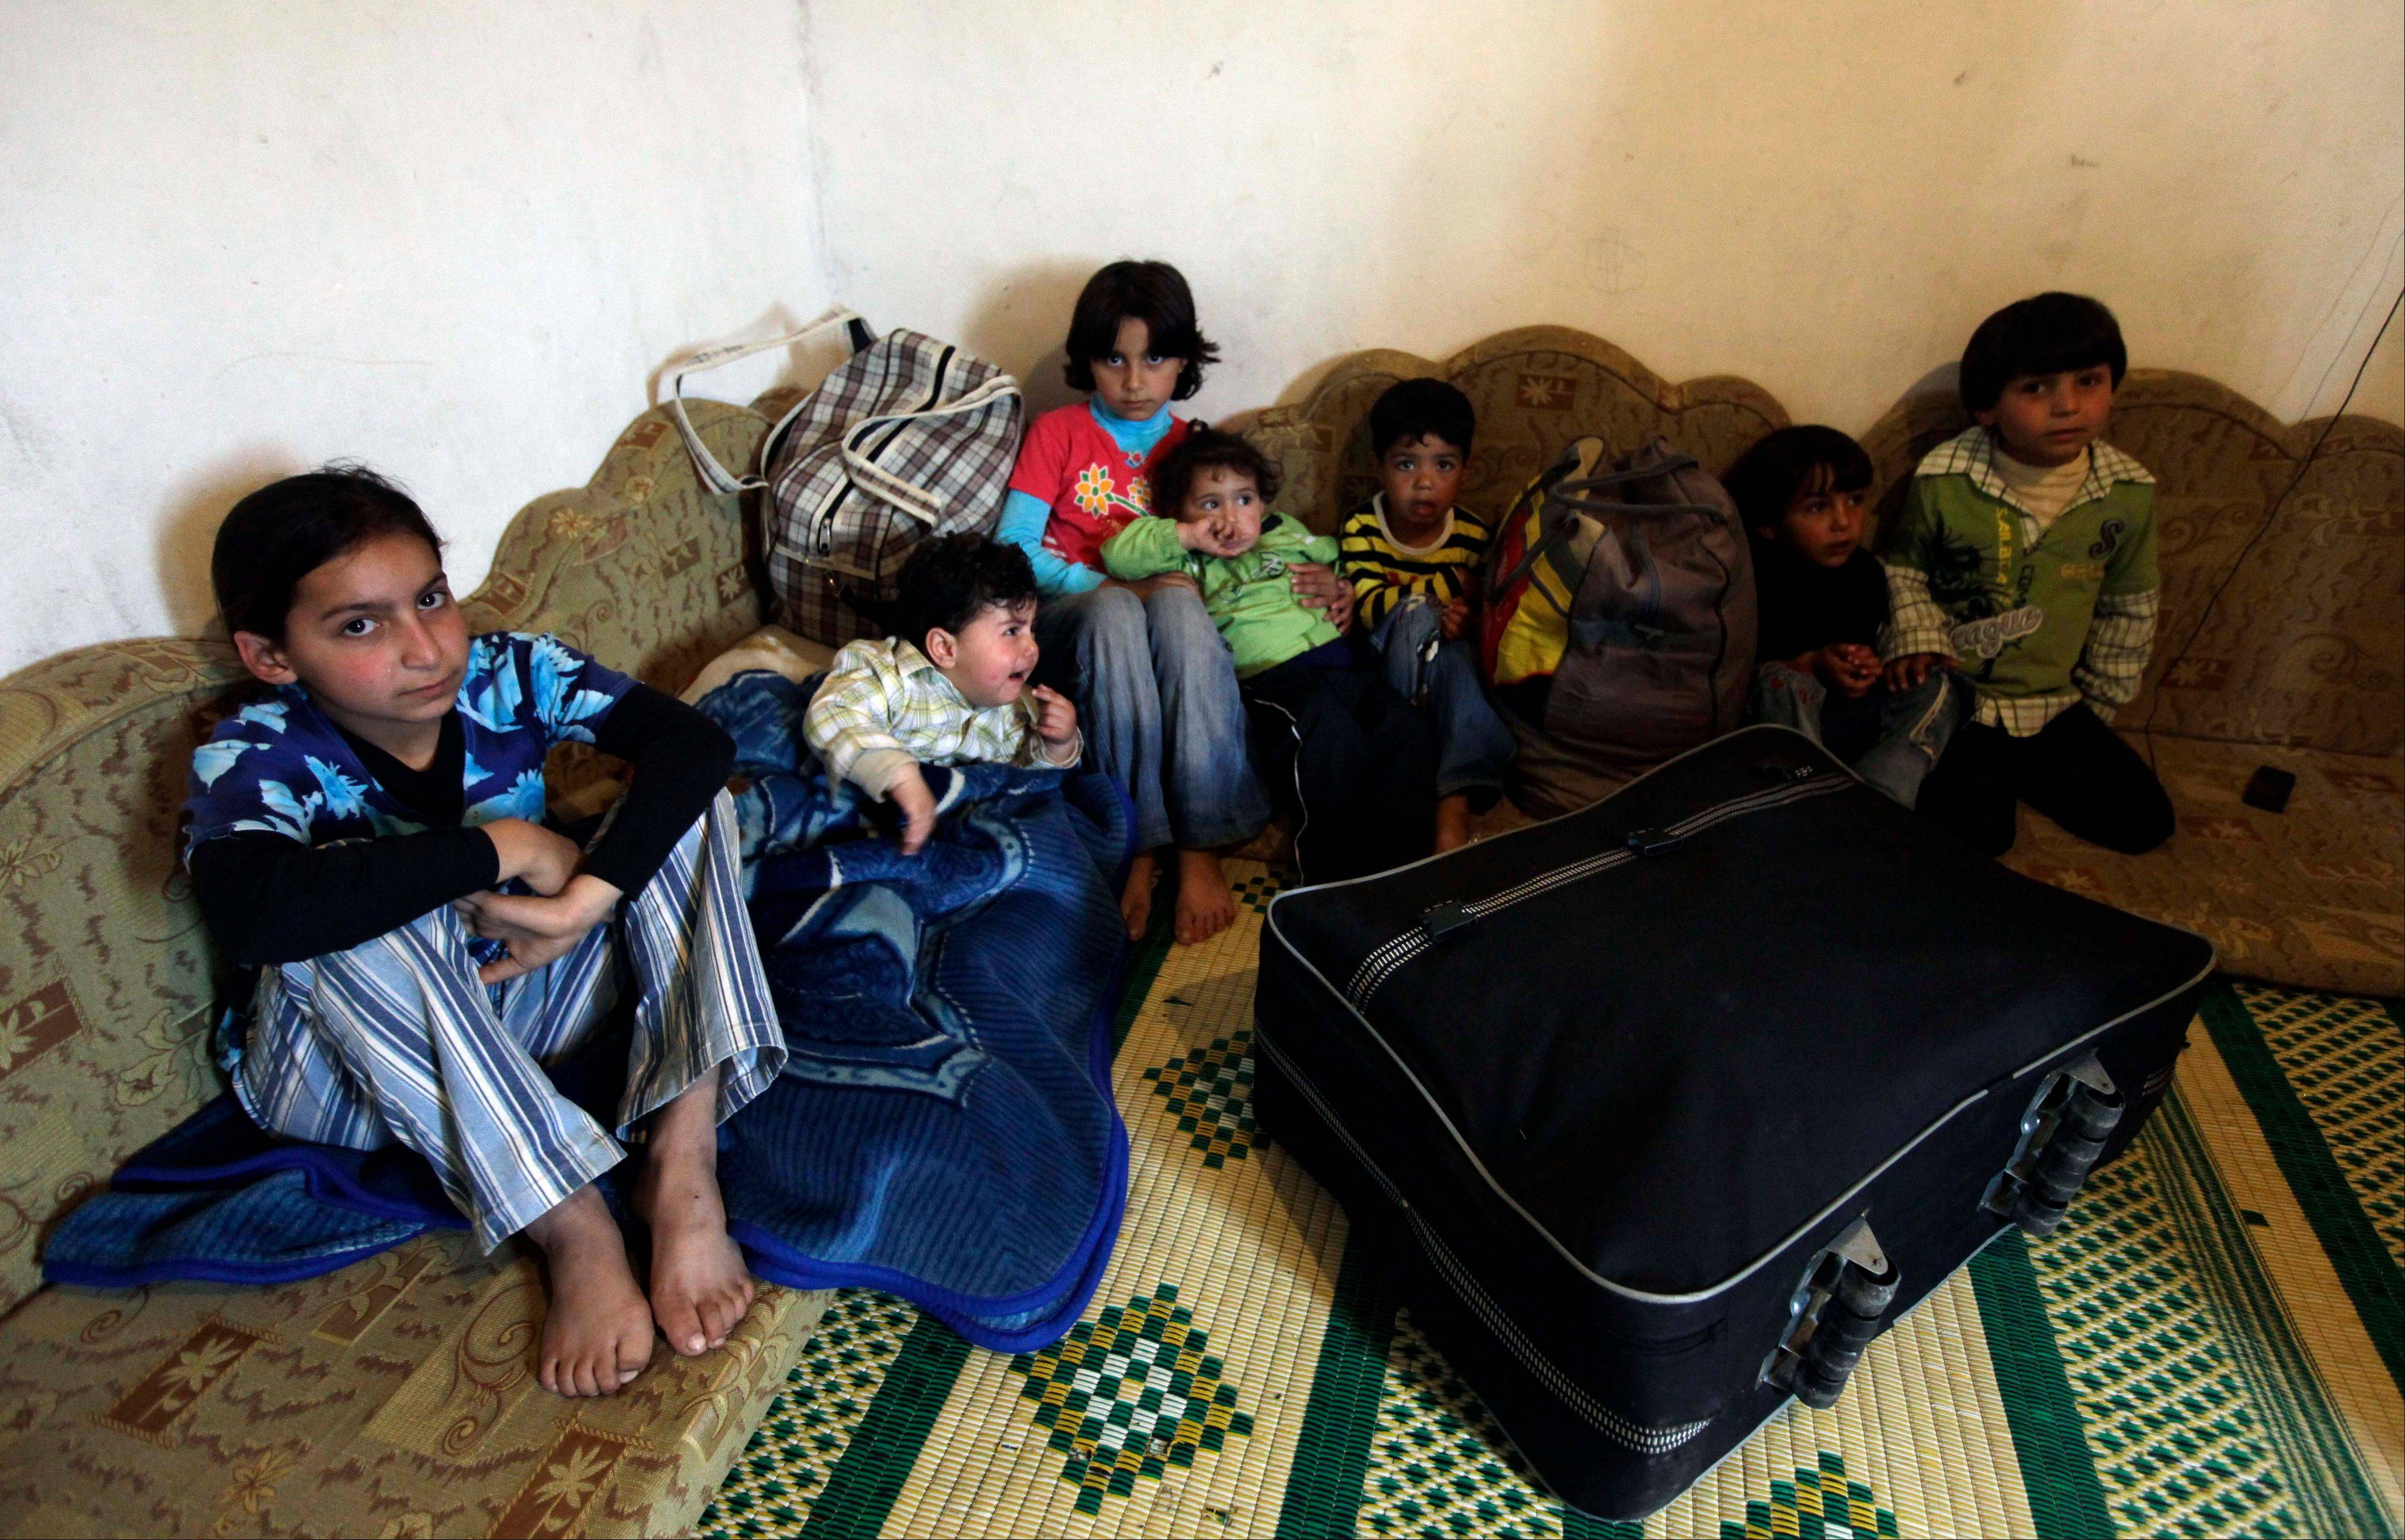 Syrian children gather at the house of their Lebanese relatives in April after fleeing the unrest in their country in the Wadi Khaled area, less than a mile from the Lebanon-Syria border, north of Lebanon.